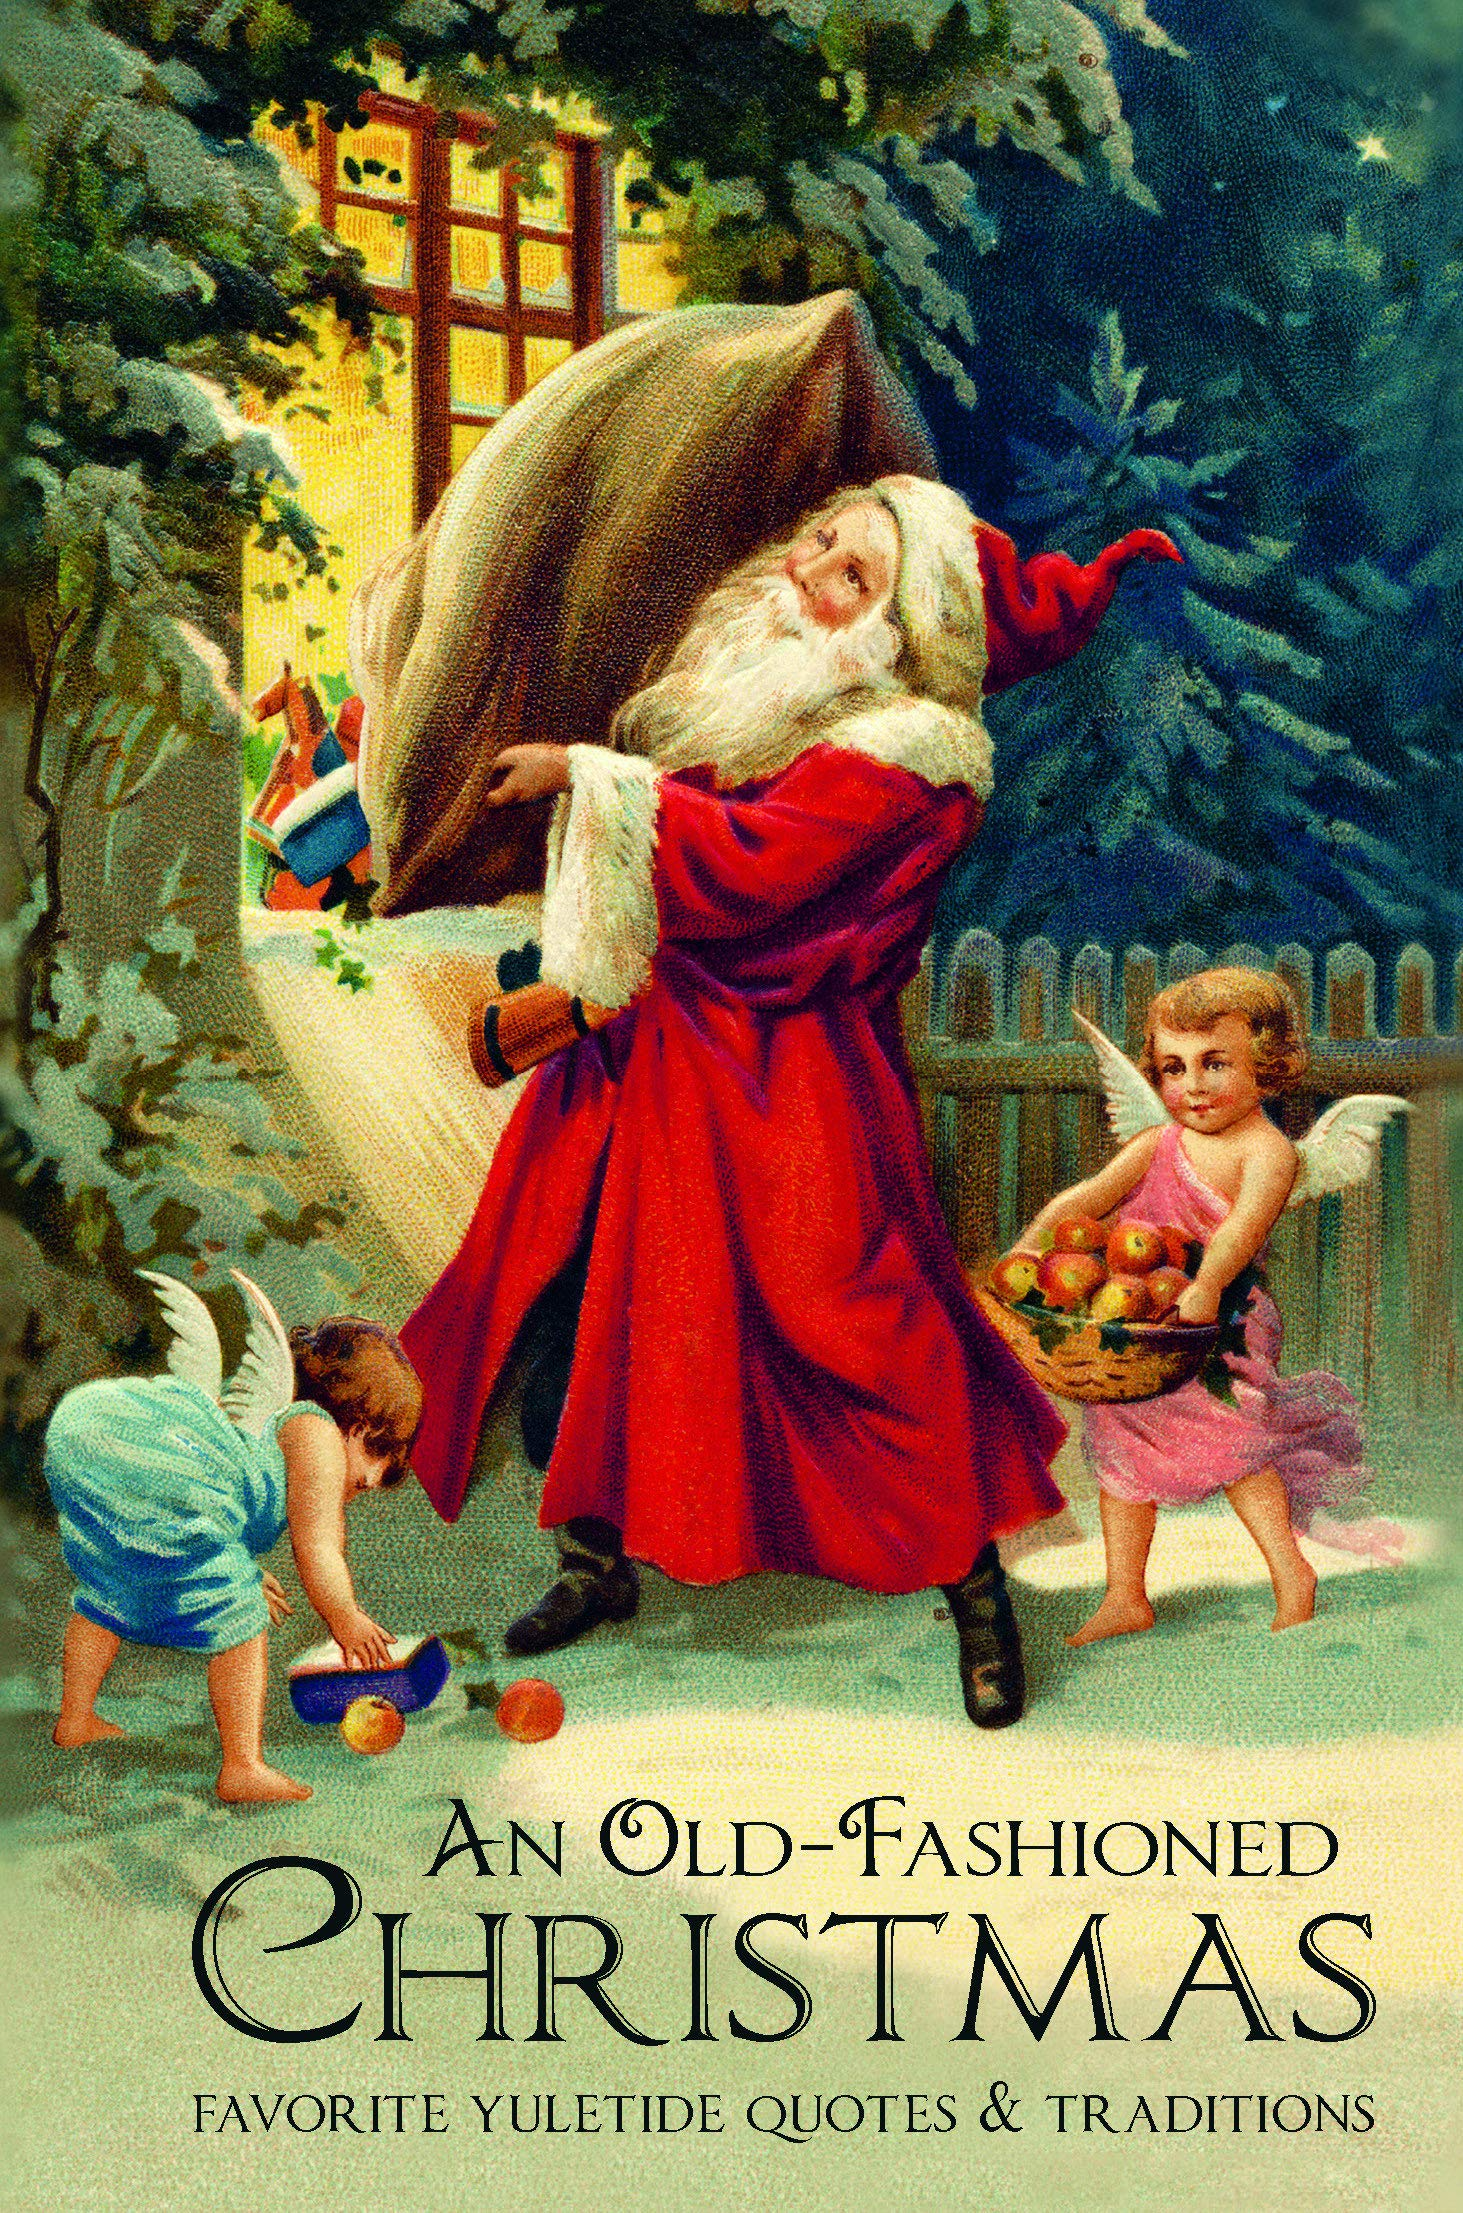 An Old-Fashioned CHRISTMAS Favorite Yuletide Quotes & Traditions- Book Showcase